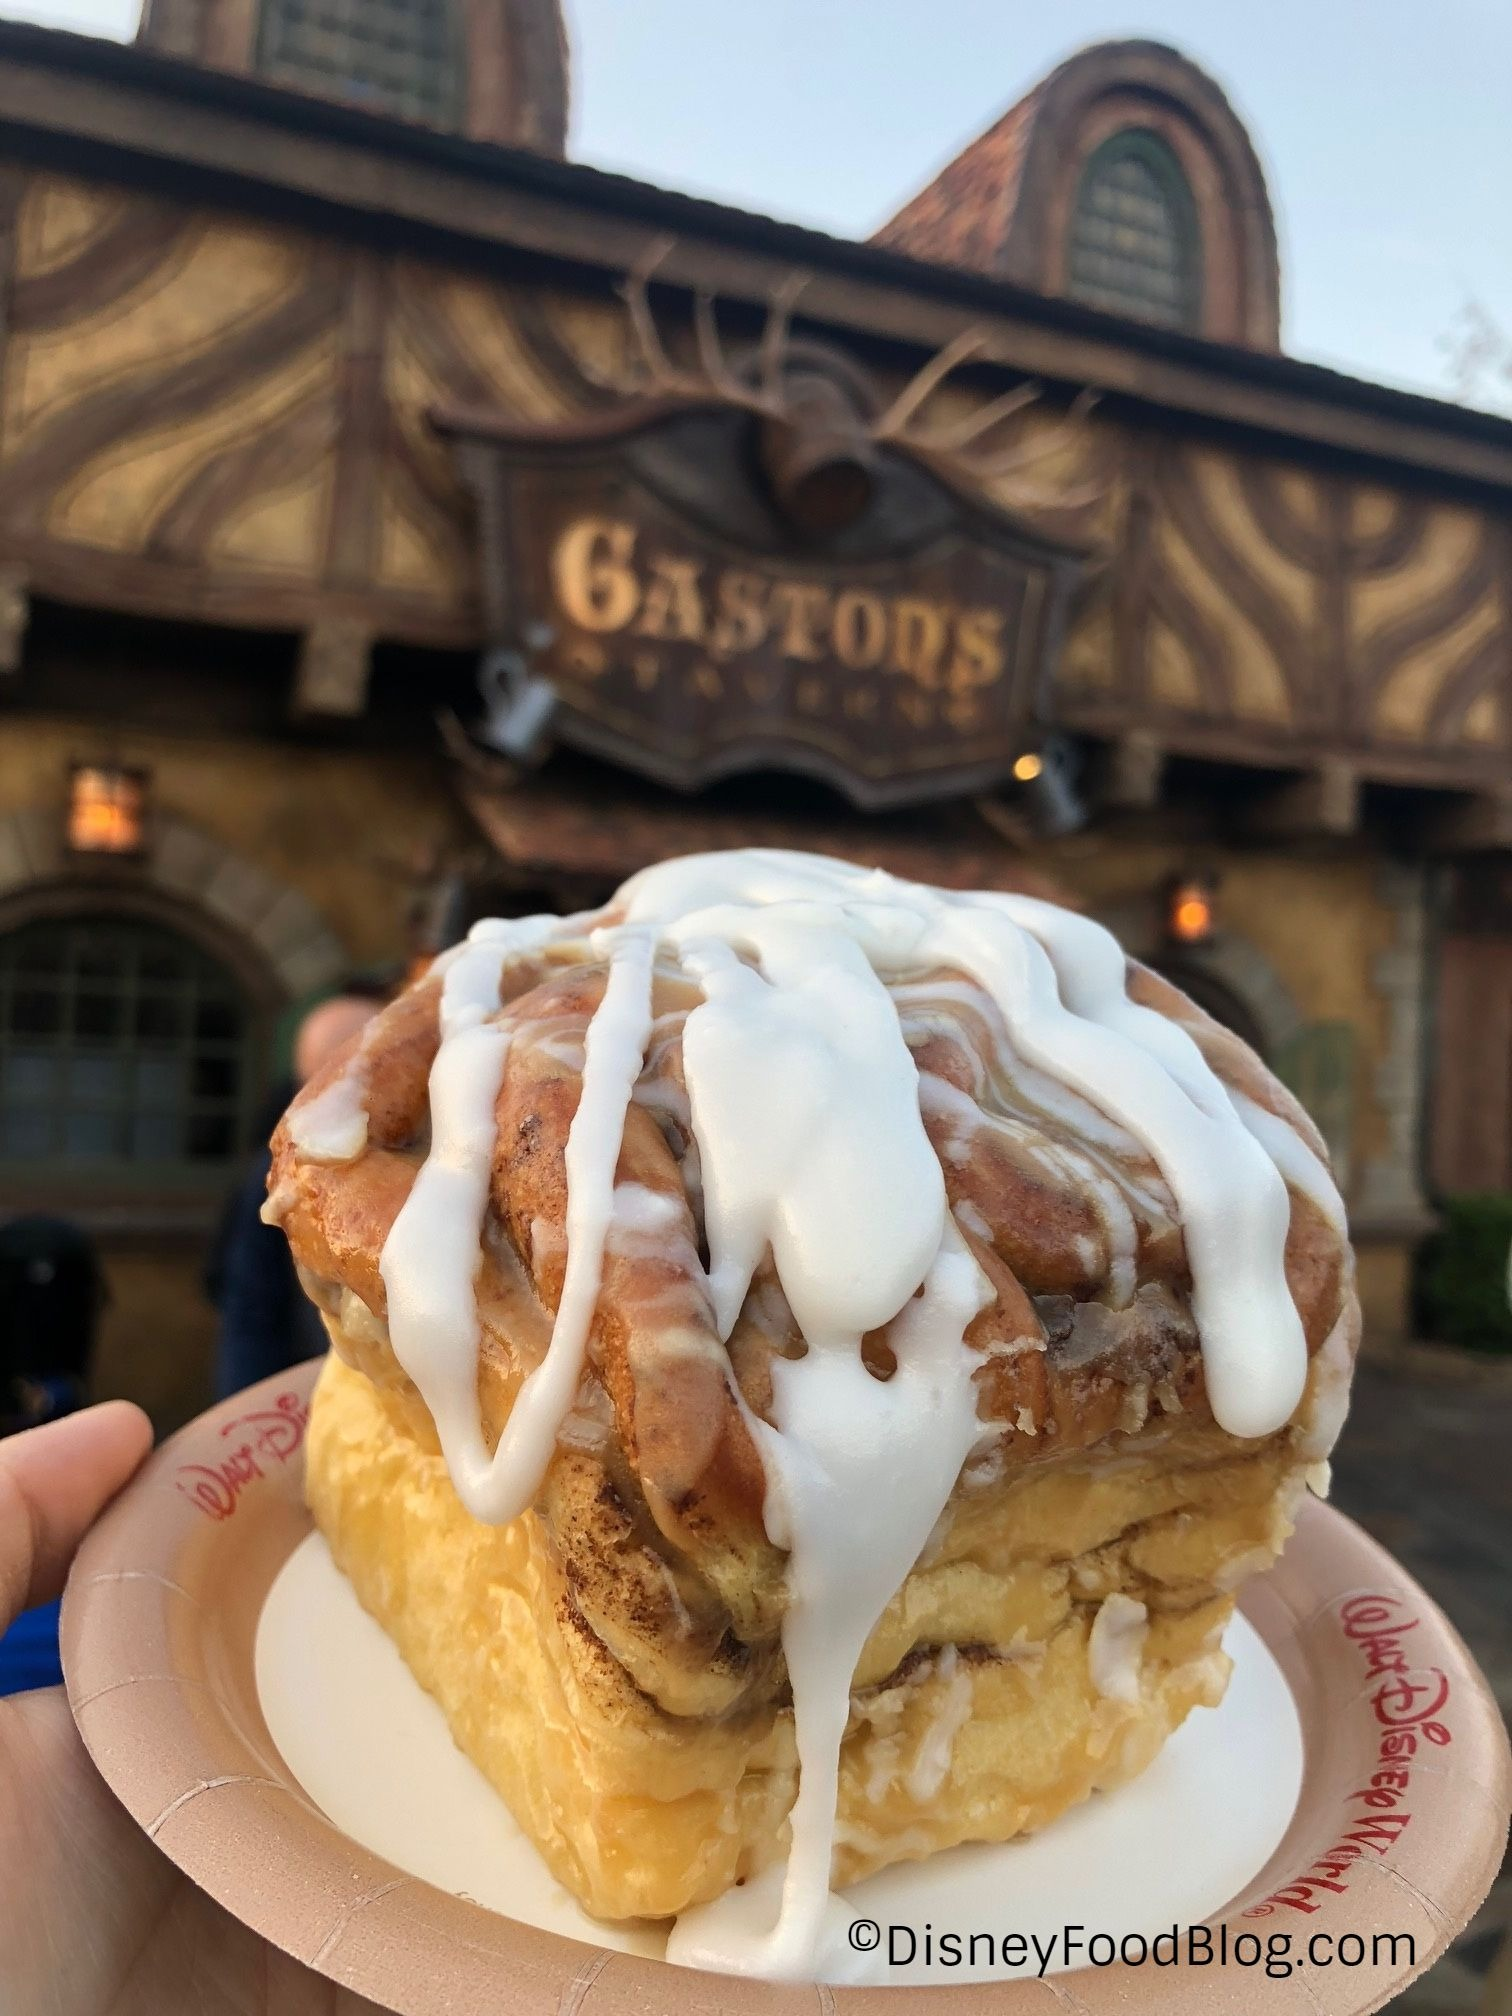 gastons-tavern-cinnamon-roll-with-icing.